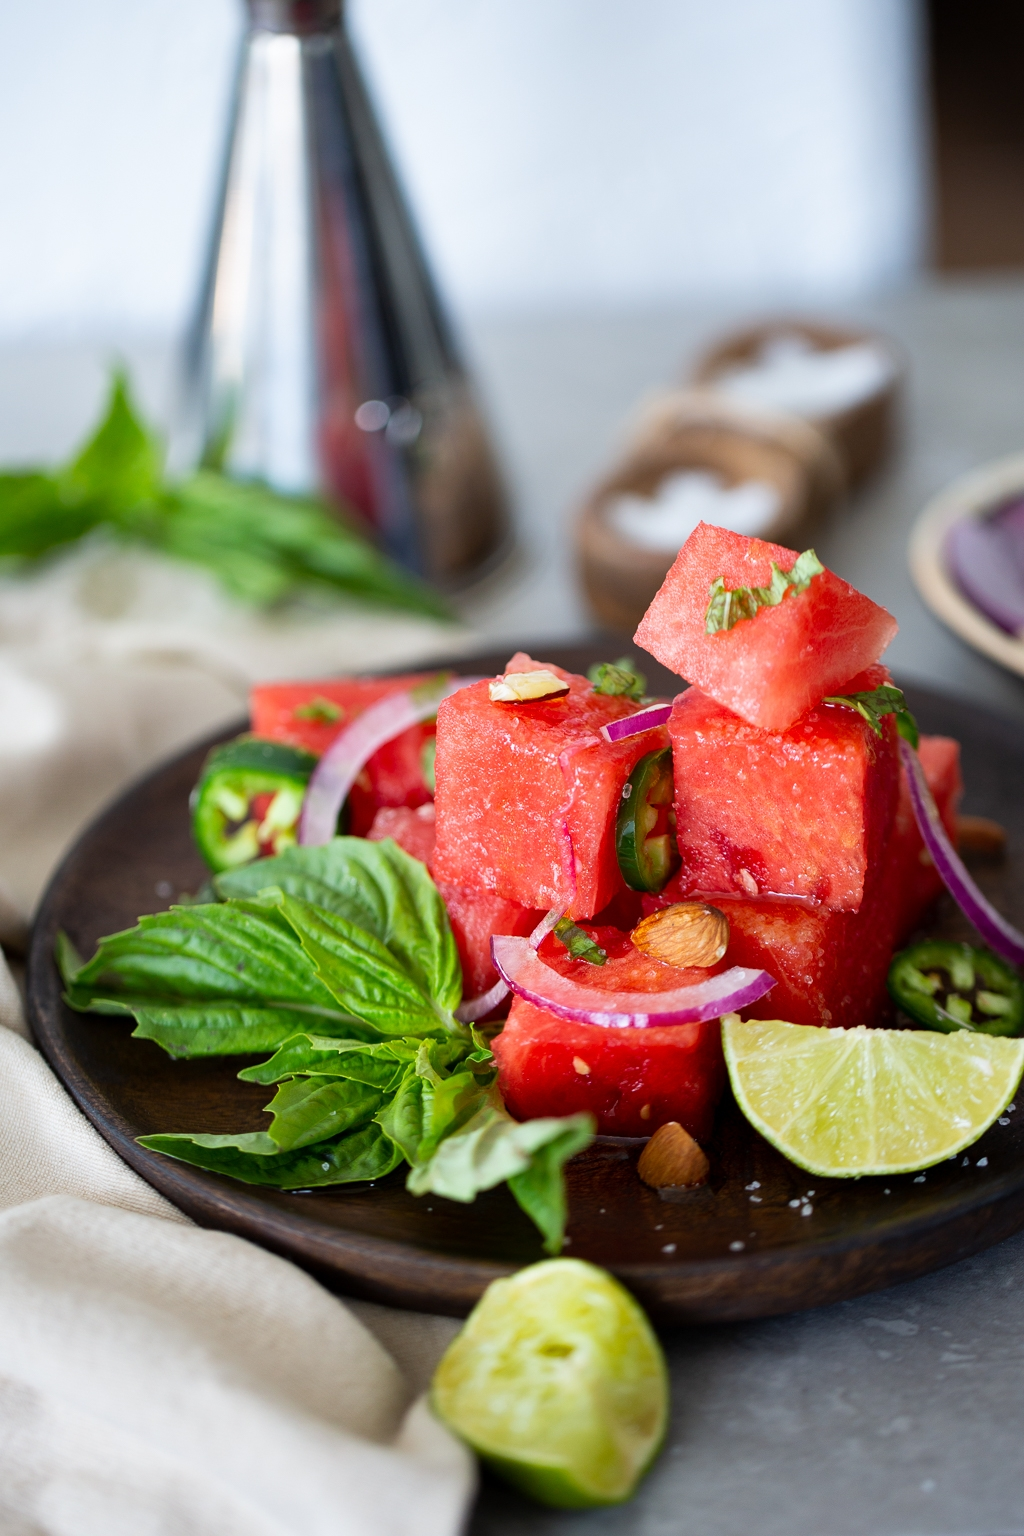 Spicy Watermelon basil salad with toasted almonds and red onion.